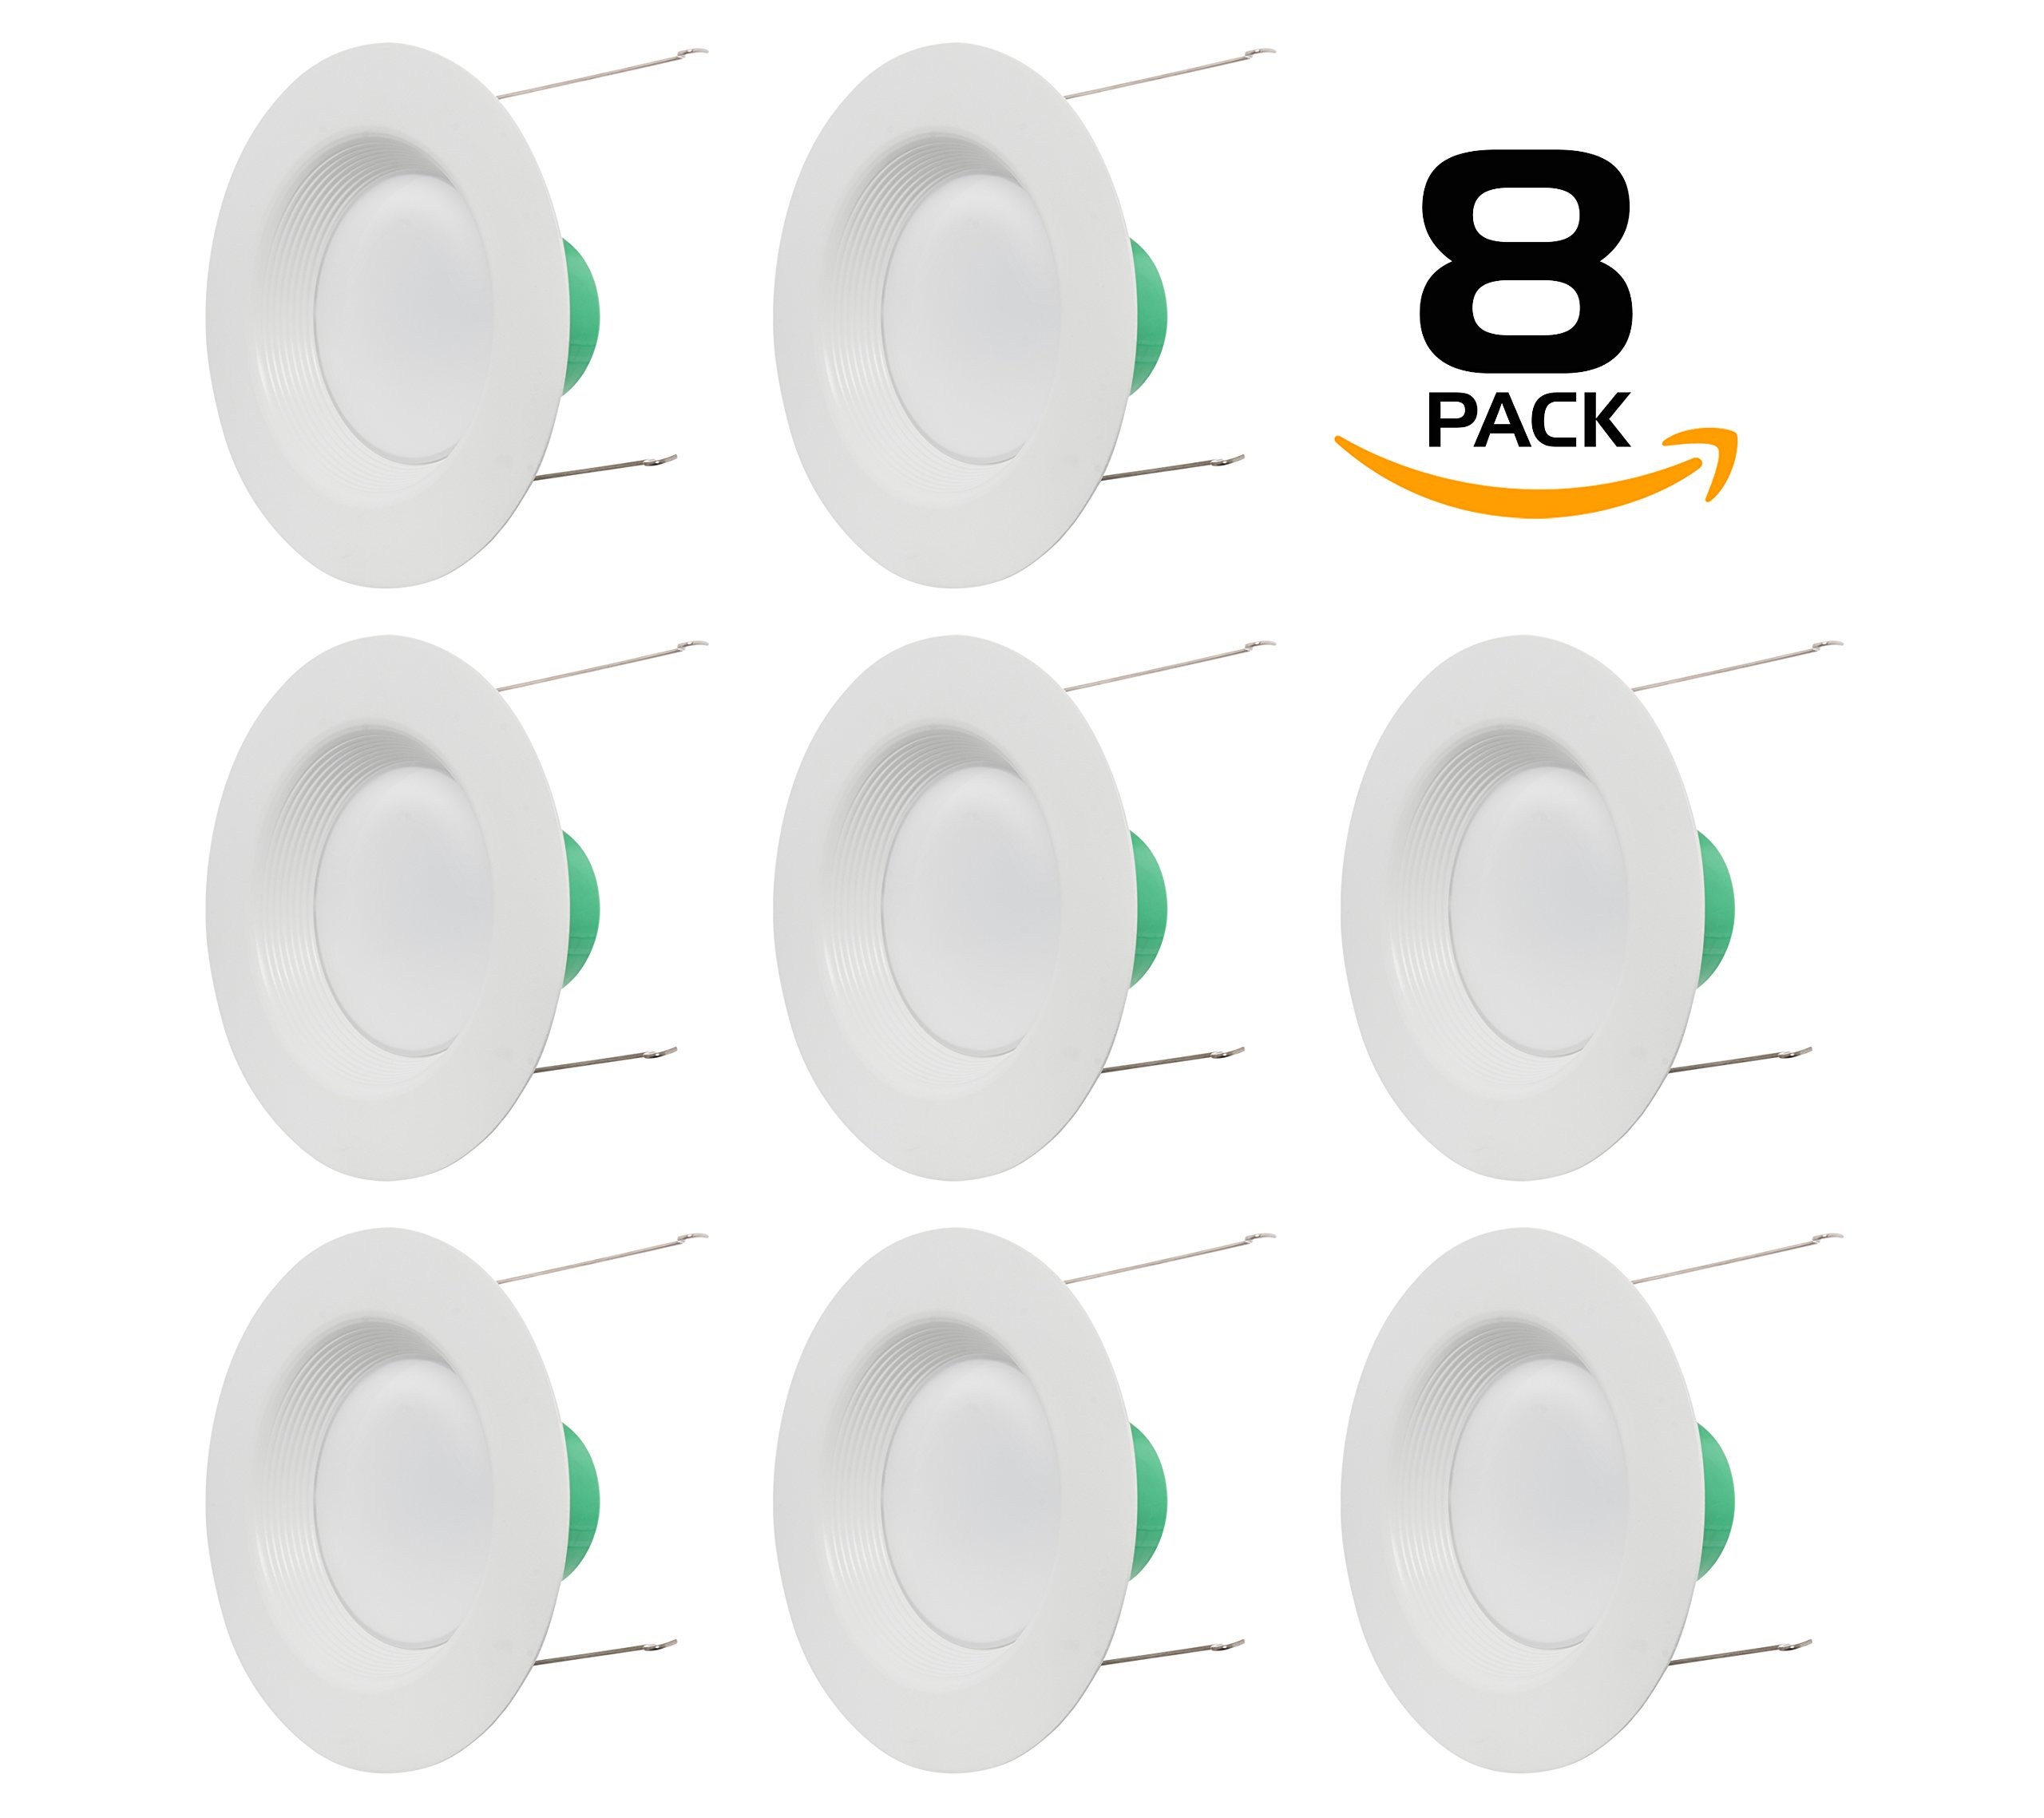 Westgate Lighting 18W 6 Inch LED Retrofit Downlight With Integrated Baffle Trim - Dimmable LED Recessed Light Fixture Kit For Home, Kitchen,Office - 120V High Lumen (8 Pack, 2700k Warm White)